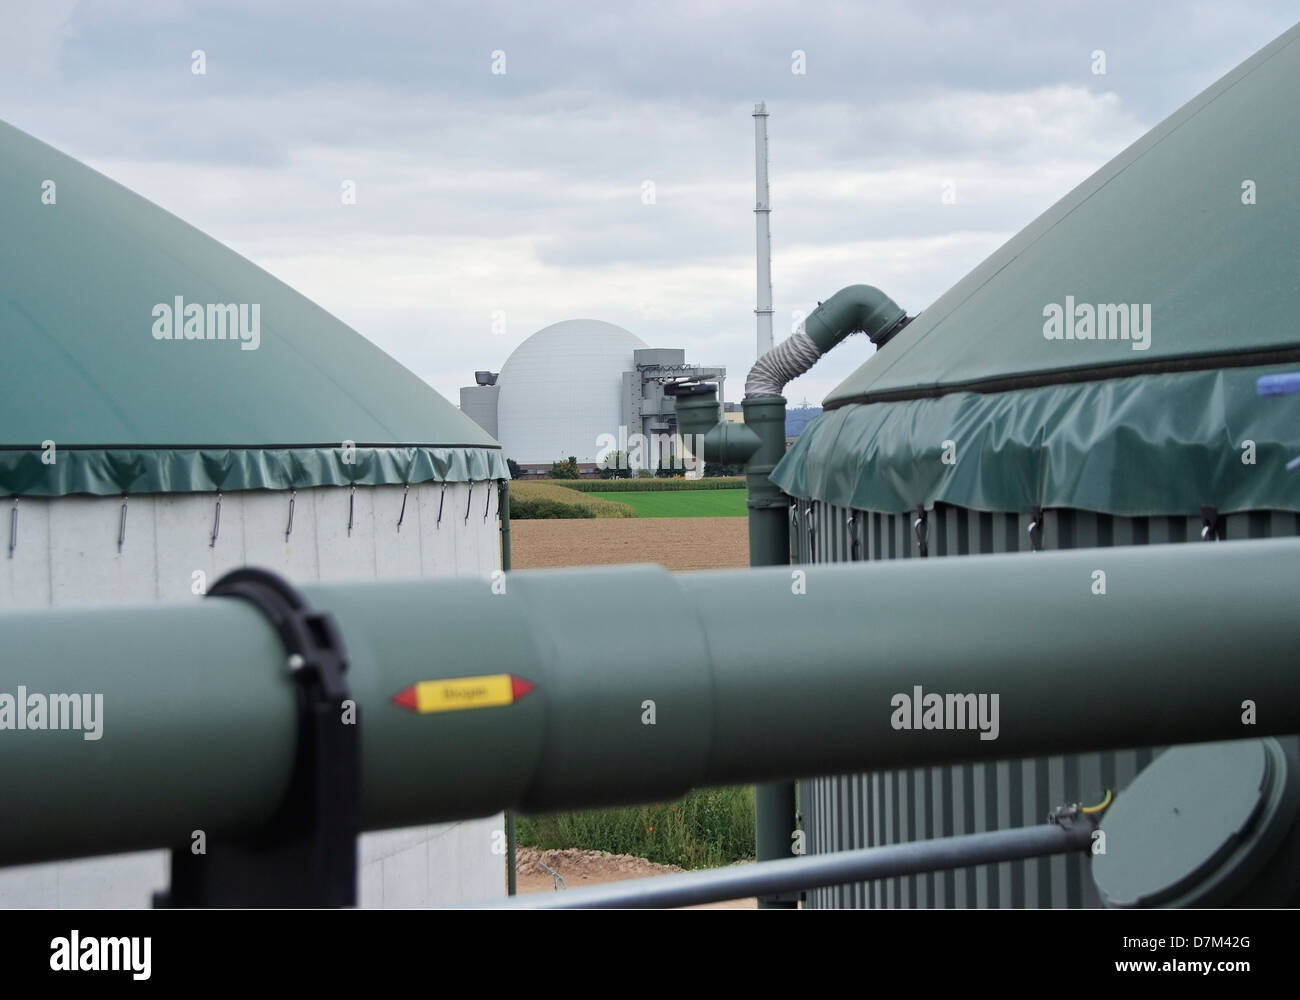 Germany, Biogas plant and nuclear power plant - Stock Image